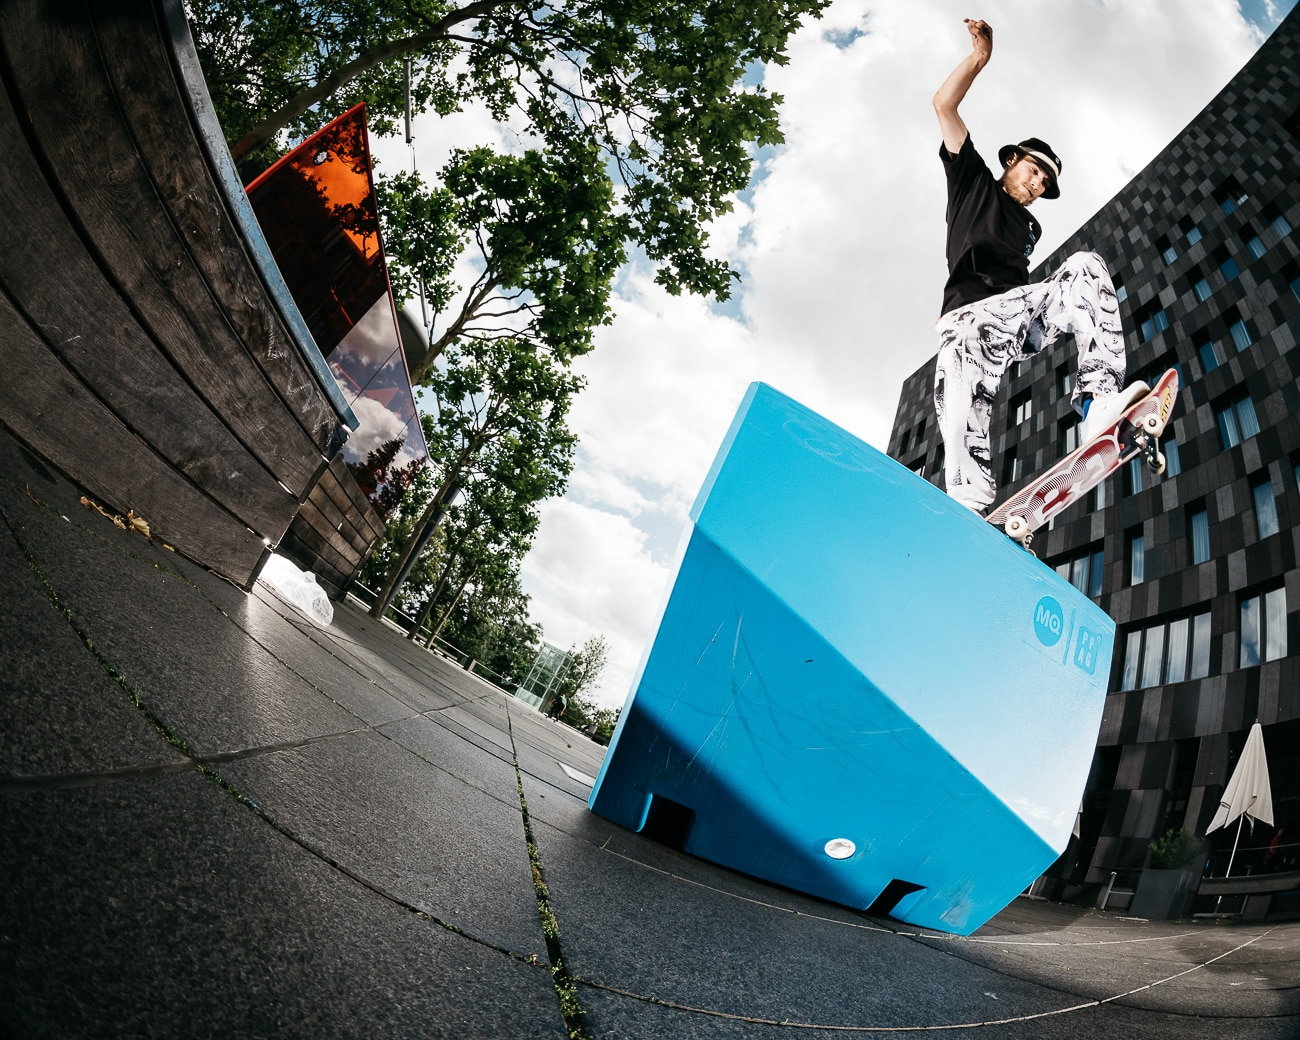 Luxemburg-irregularskatemag-tour-25